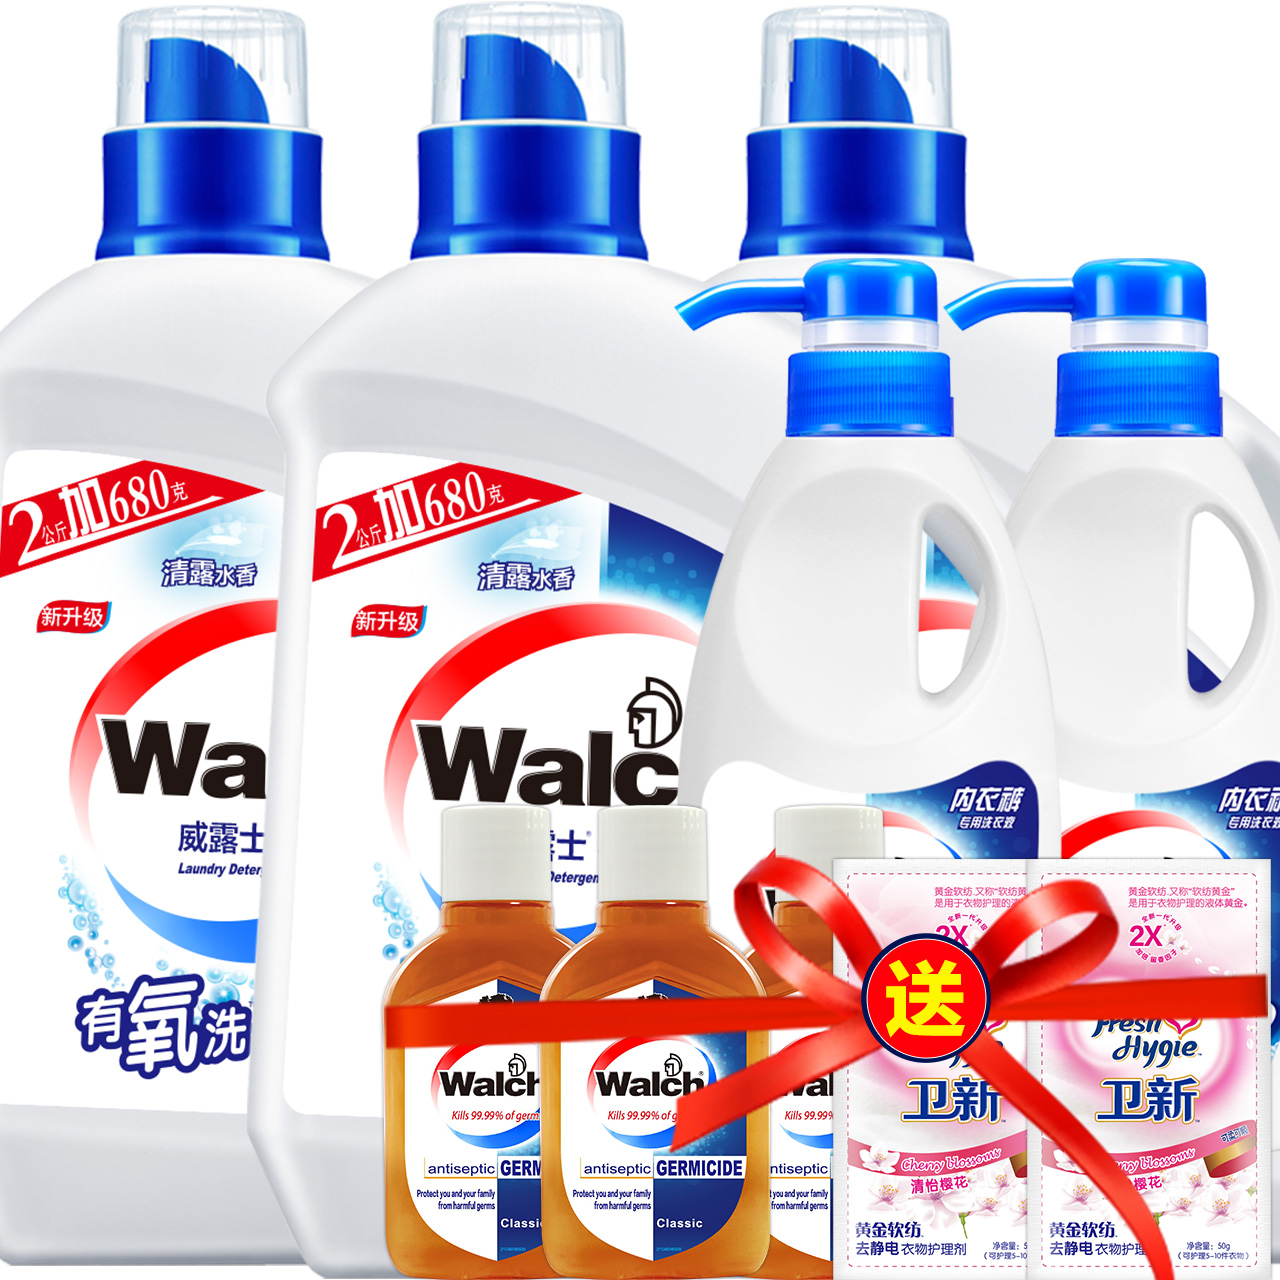 Top 3000 walch aerobic wash laundry detergent liquid detergent 49 yuan 17 of 1 a year the amount of consumers venom smooth and mellow Agent